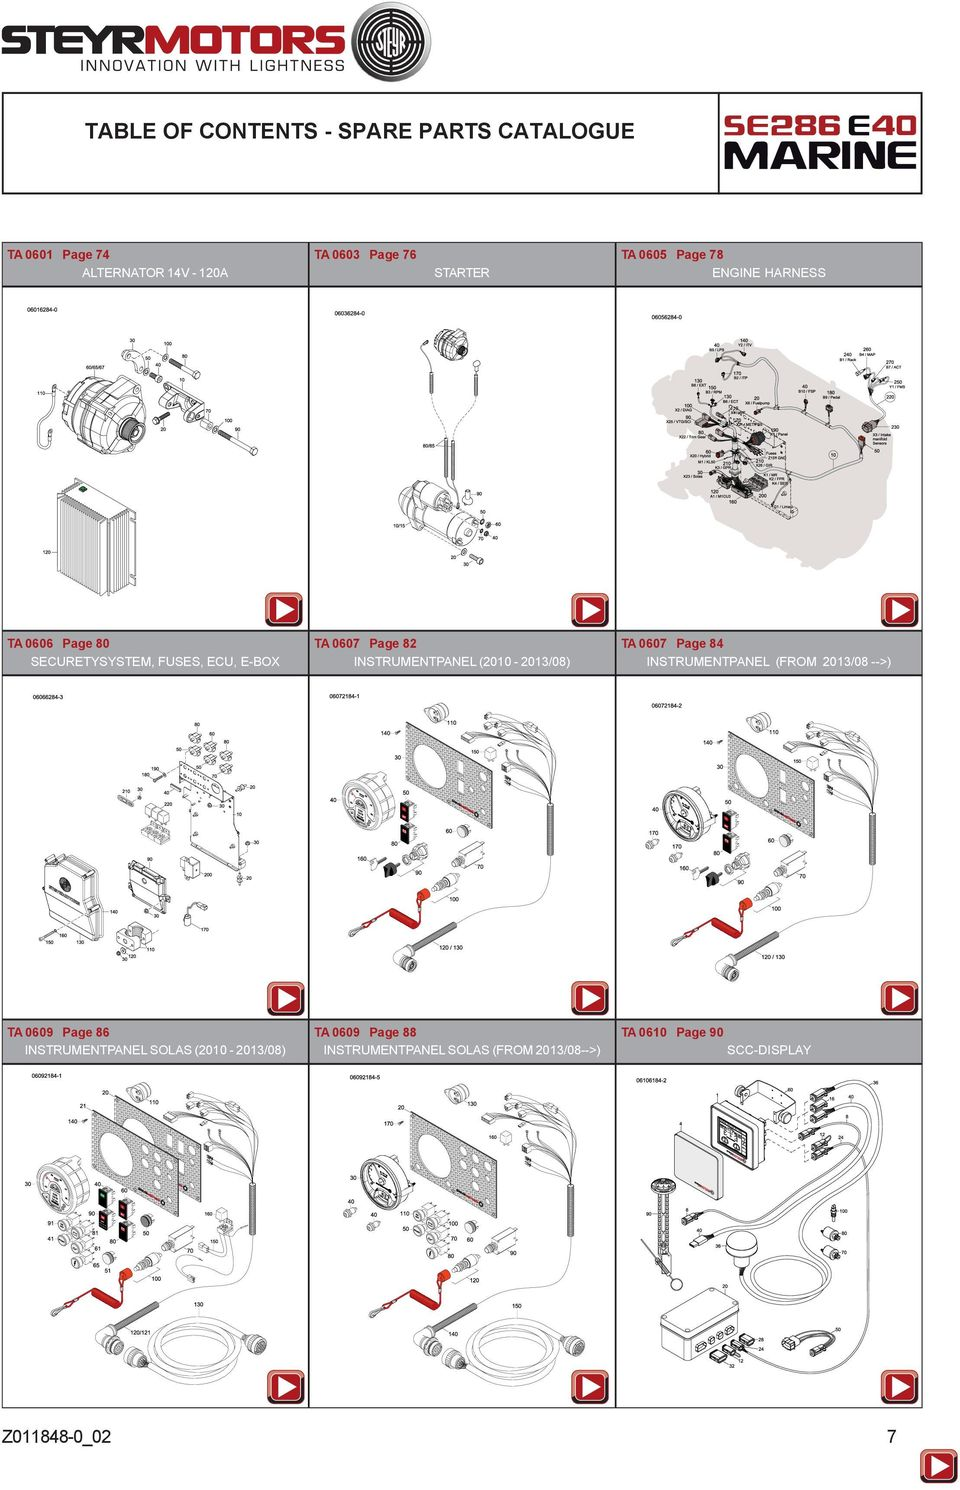 Spare Parts Catalogue Pdf 120 Mercruiser Engine Wiring Diagram Harness Scc Display 7 Instrumentpanel From 2013 08 Ta 0609 Page 86 Solas